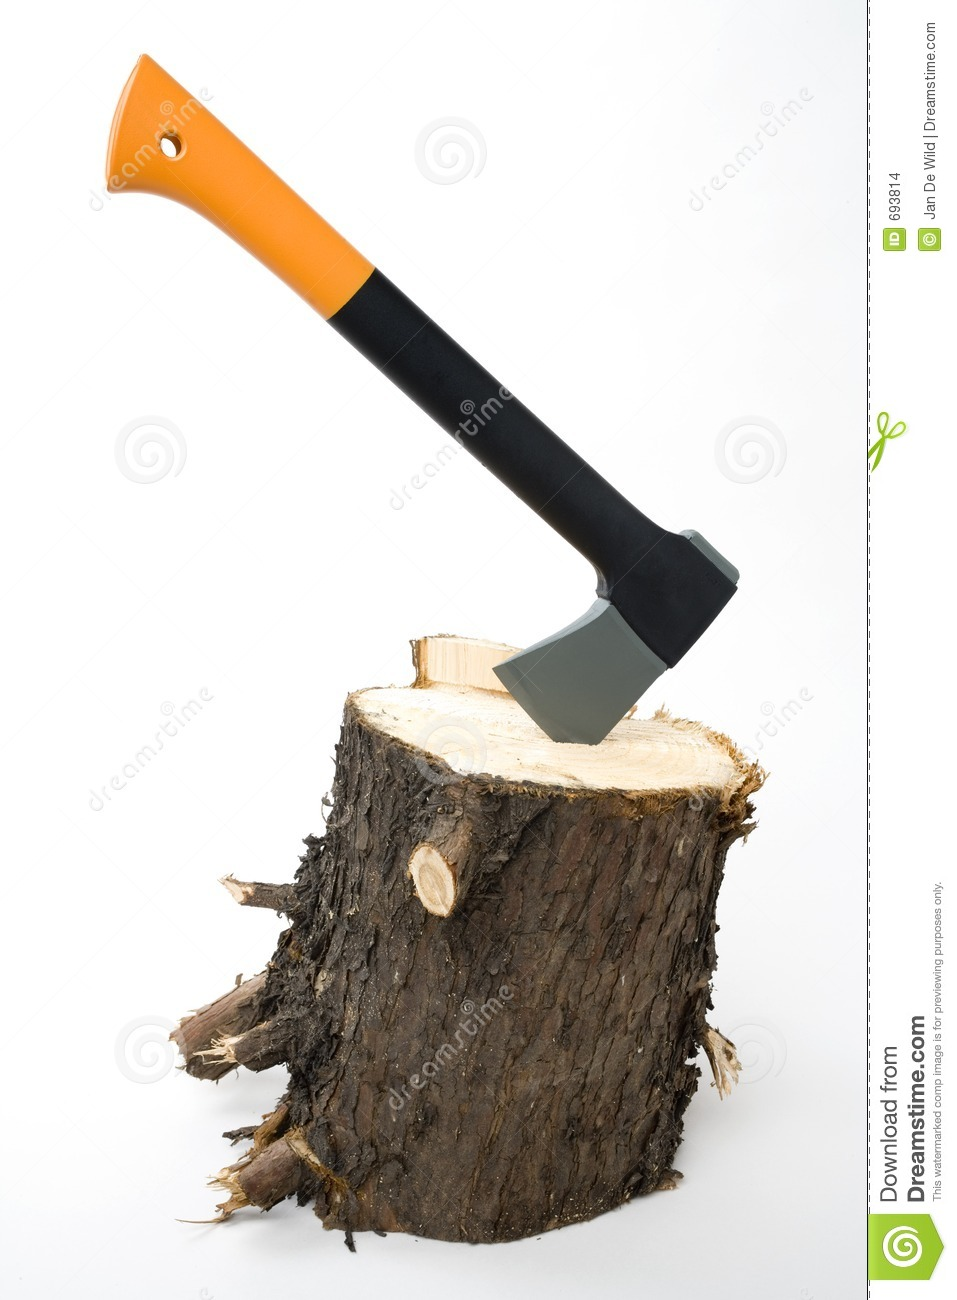 Chopping Wood Stock Photo Image Of Block Background Stuck 693814